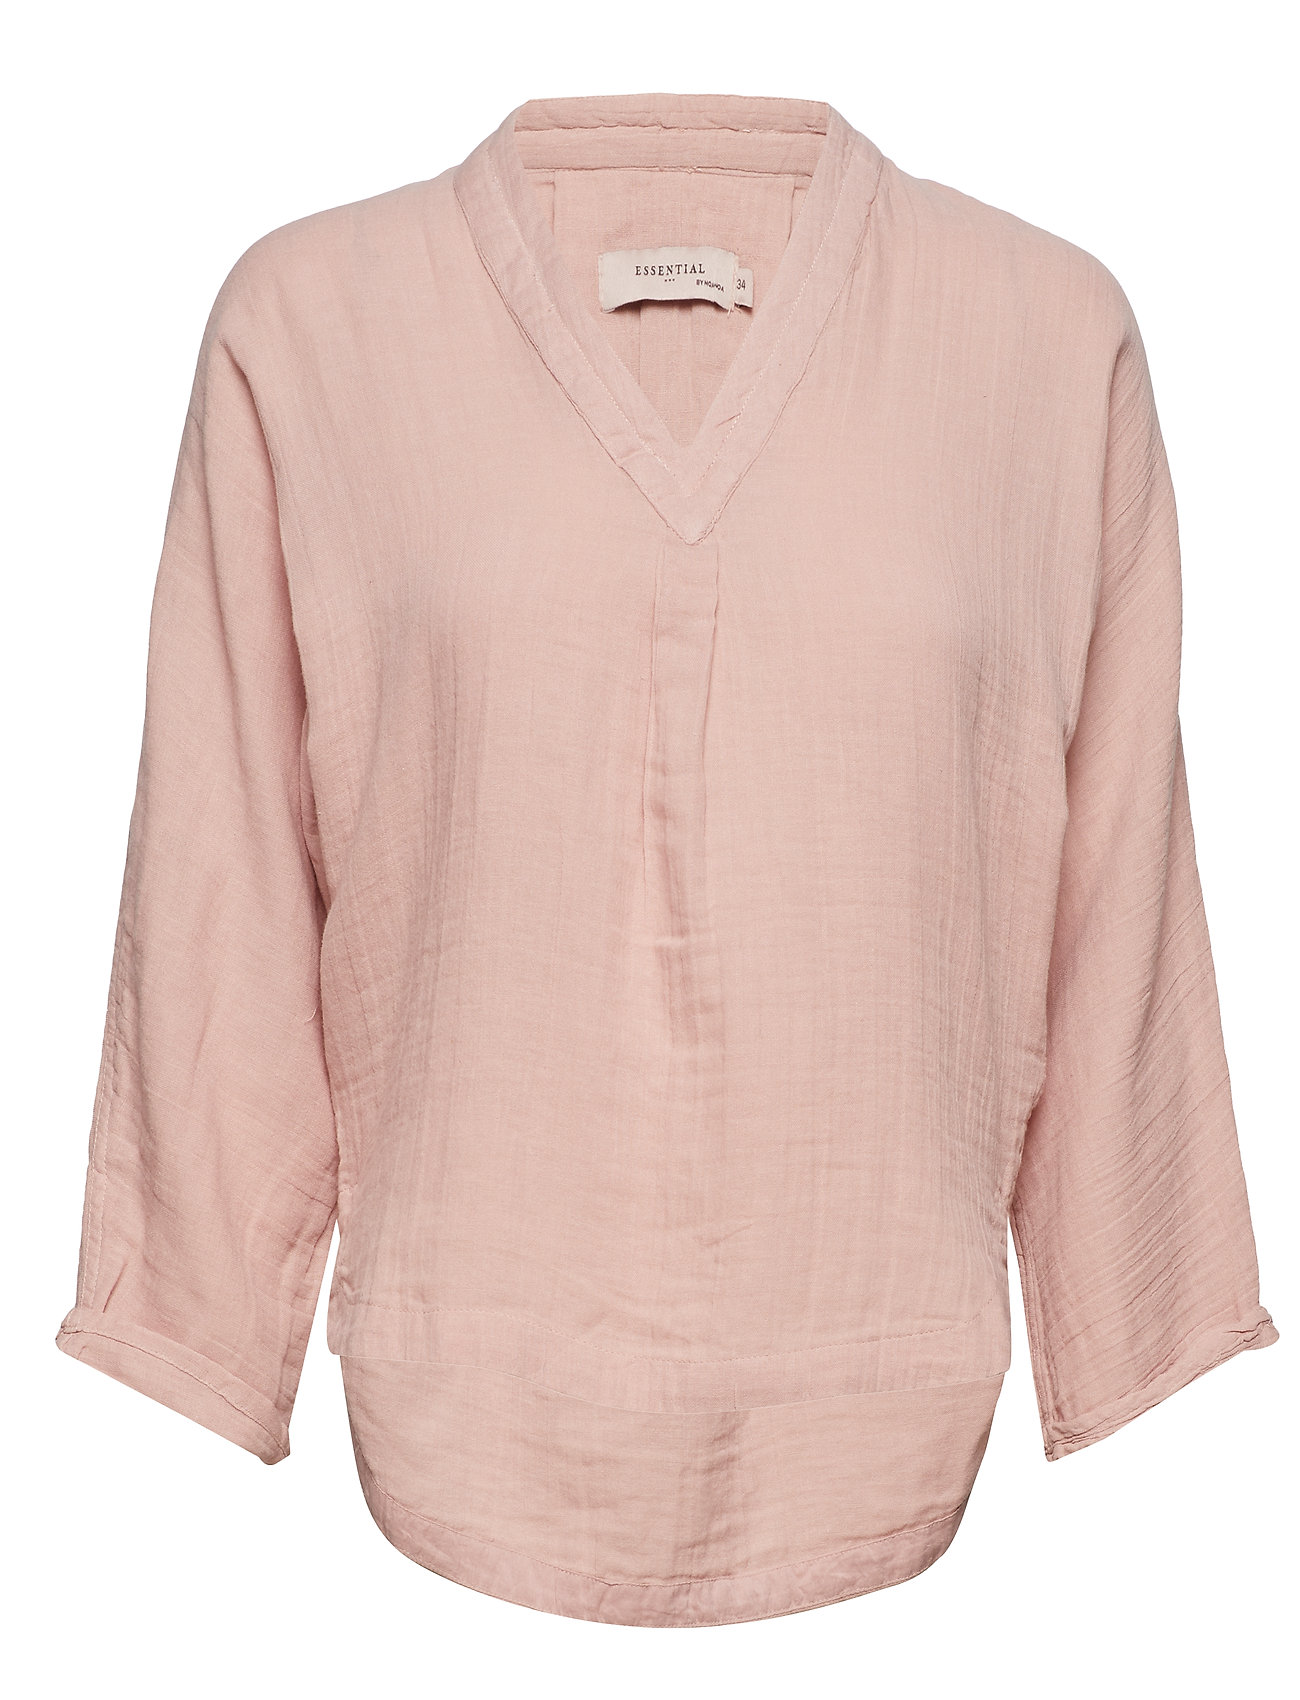 Noa Noa Blouse - ADOBE ROSE